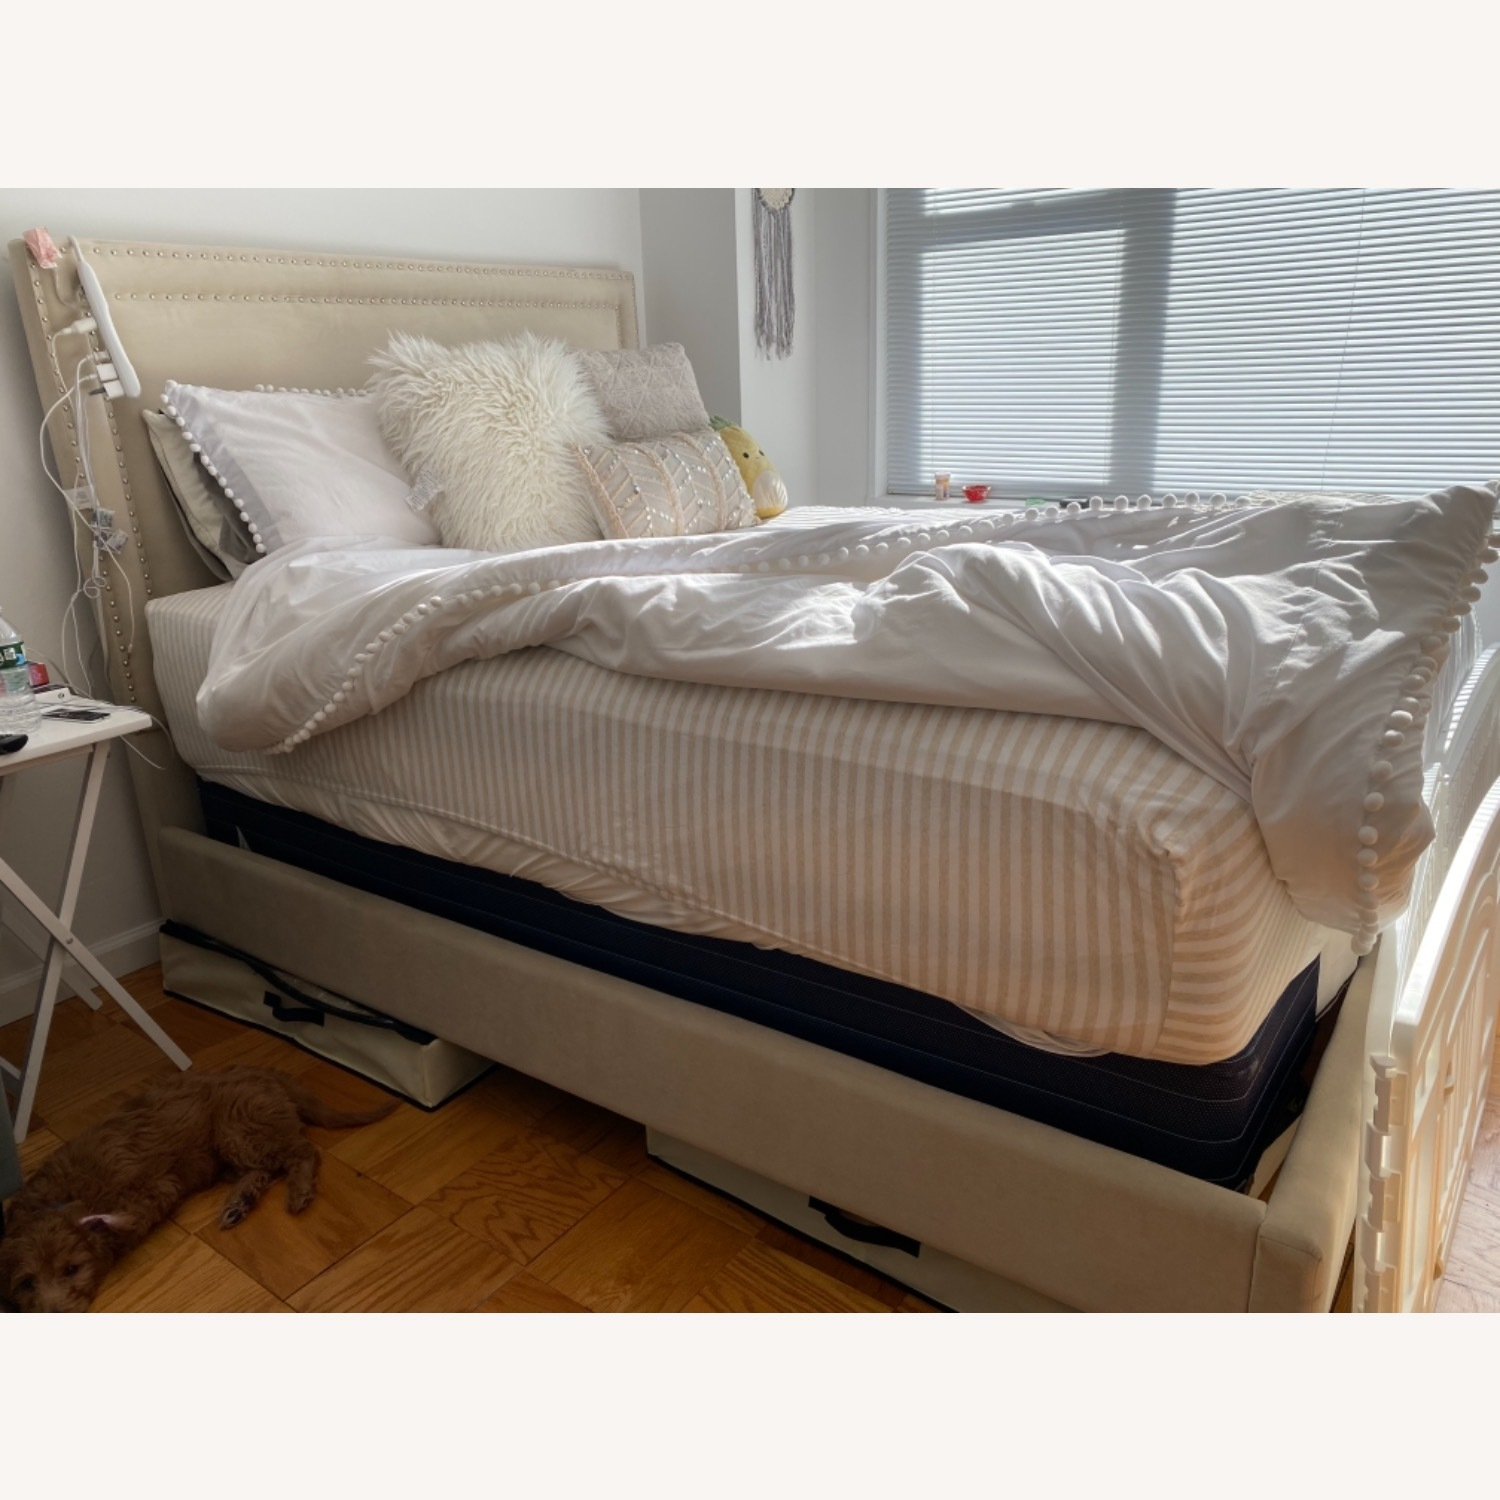 Bob's Discount Furniture Queen Bed Frame - image-3